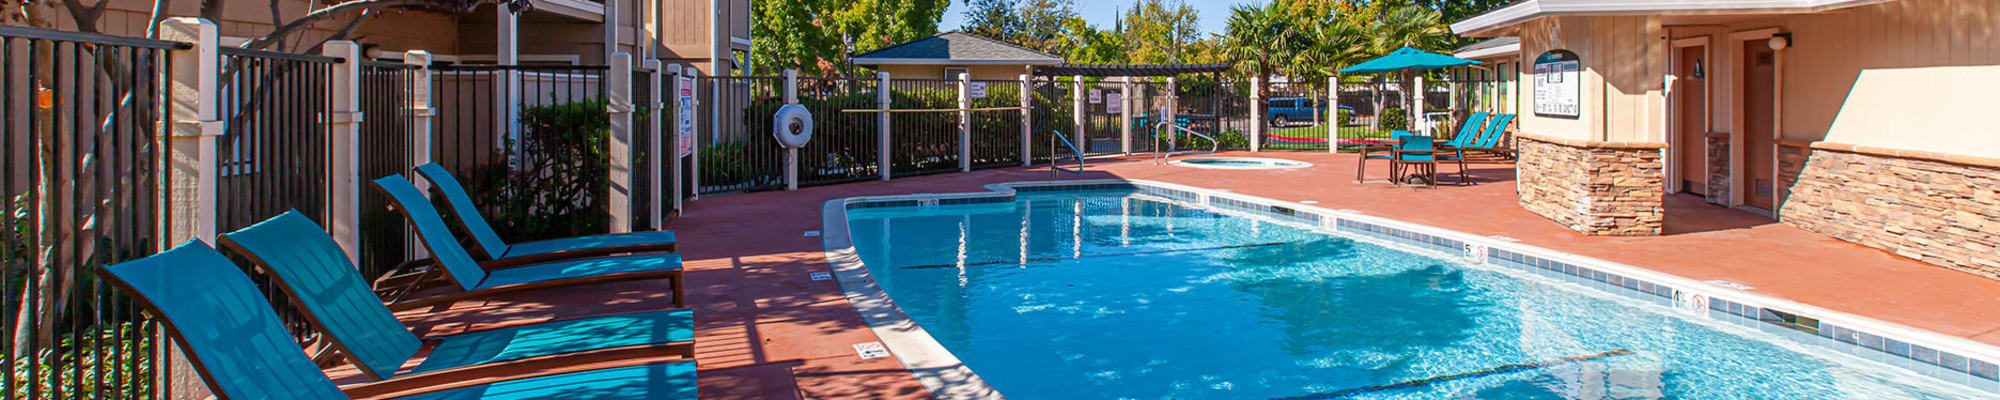 Accessibility statement at Sommerset Apartments in Vacaville, California